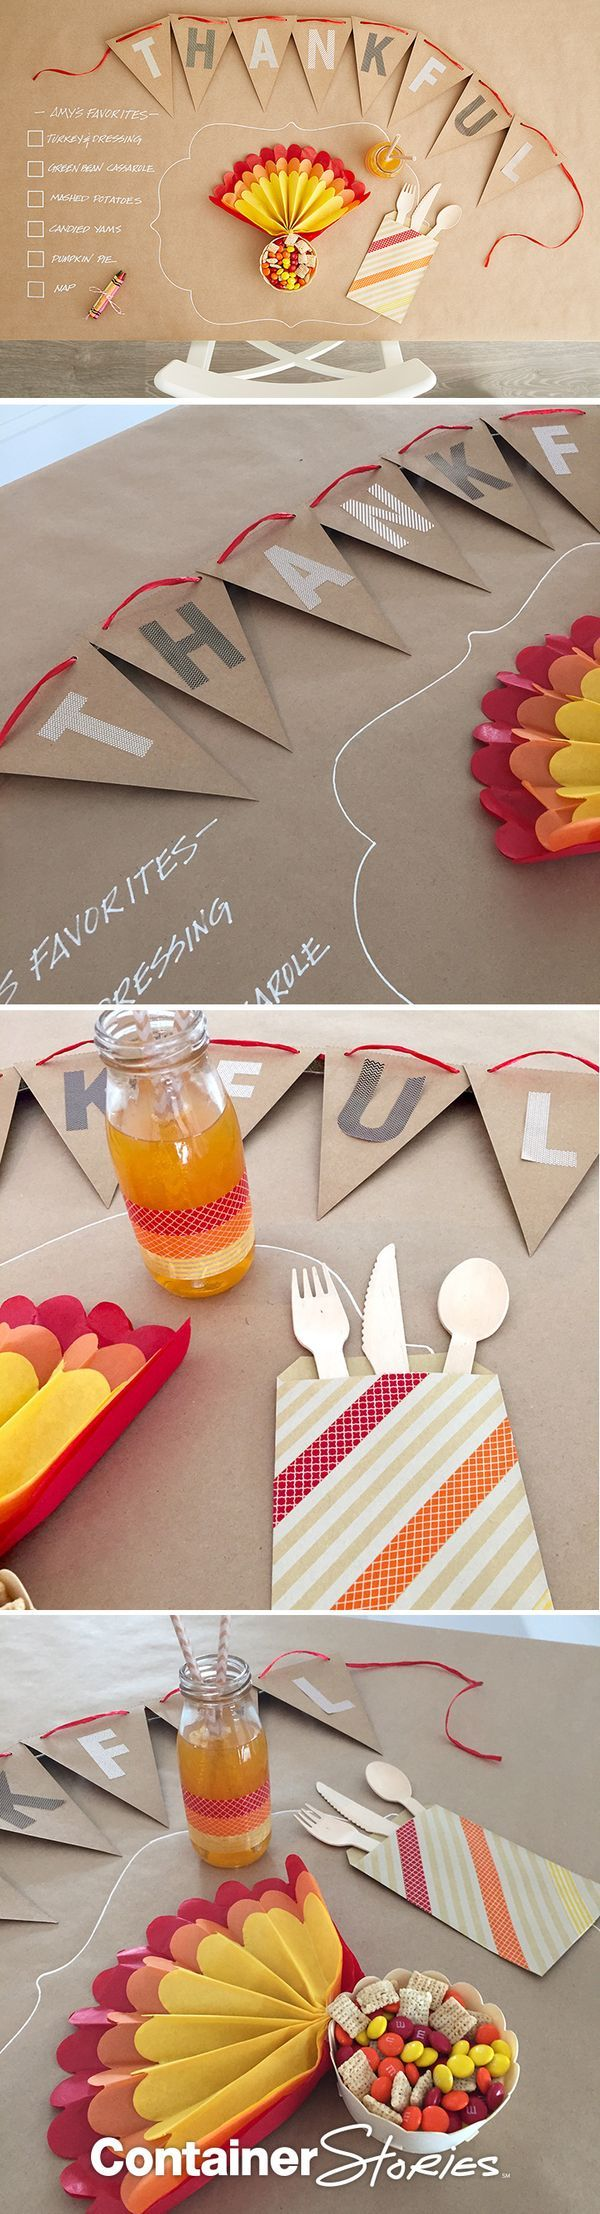 DIY Table Decorations Keep the kids (and adults) entertained with this fun idea. Start by covering your table with our Kraft wrapping paper. Then trace the outline of a place mat at each place setting using our Chalk Markers. Finally, add a fun quiz or question and let everyone write their answers on the table!  Turkey Tail Feather Snack Bowls and a cute Personalized Pennant help complete the look and are sure to keep kids entertained and seated!